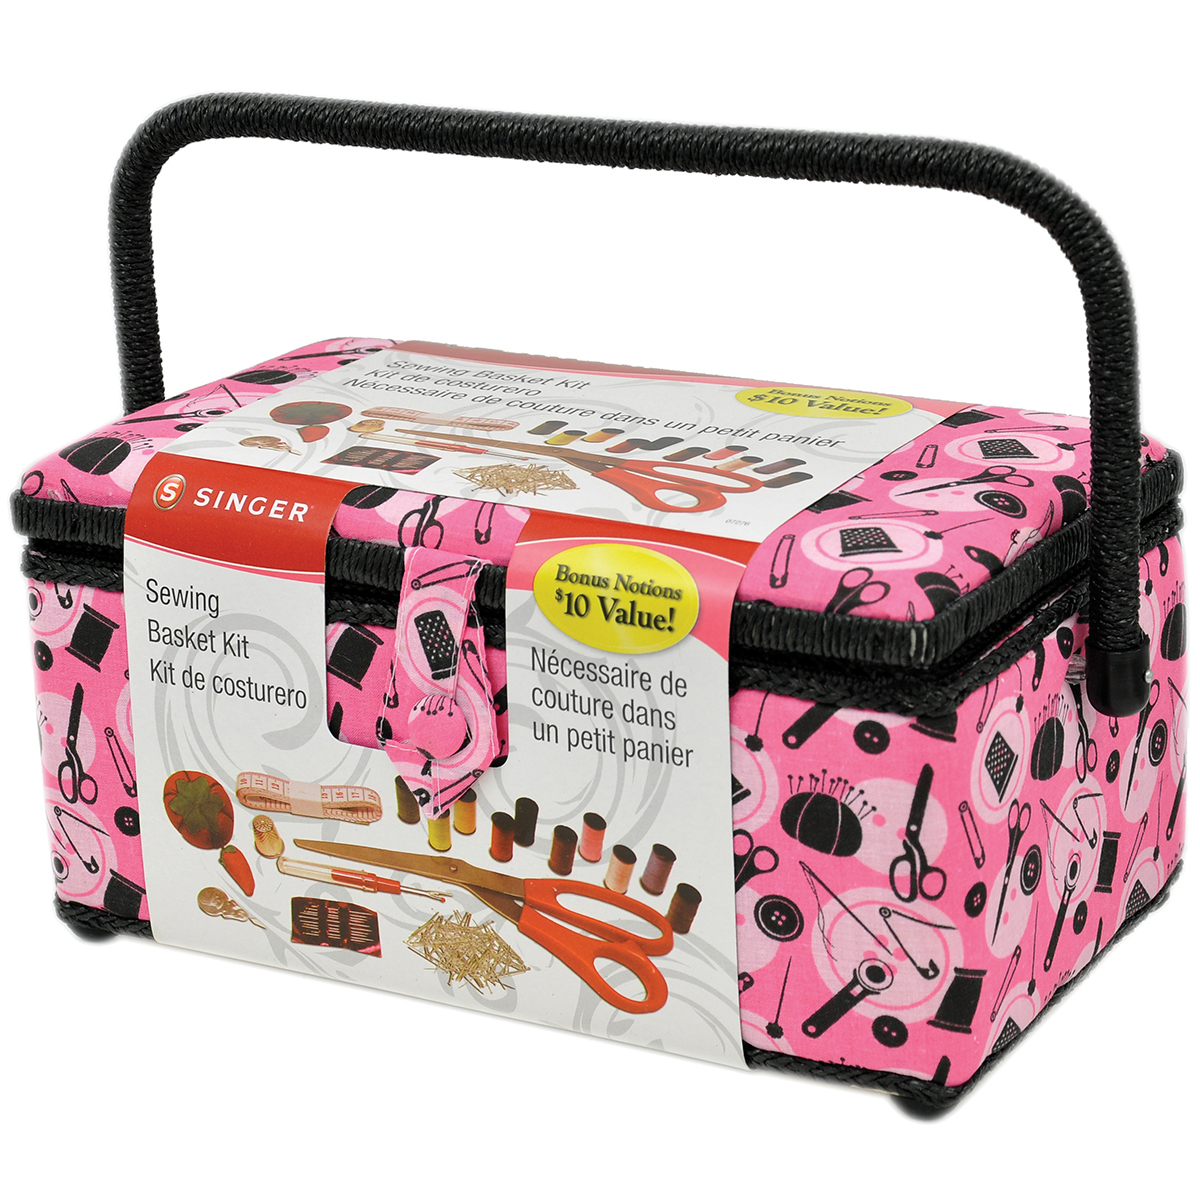 Singer Large Pink & Black Sewing Basket Kit with Notions, 126 Pieces